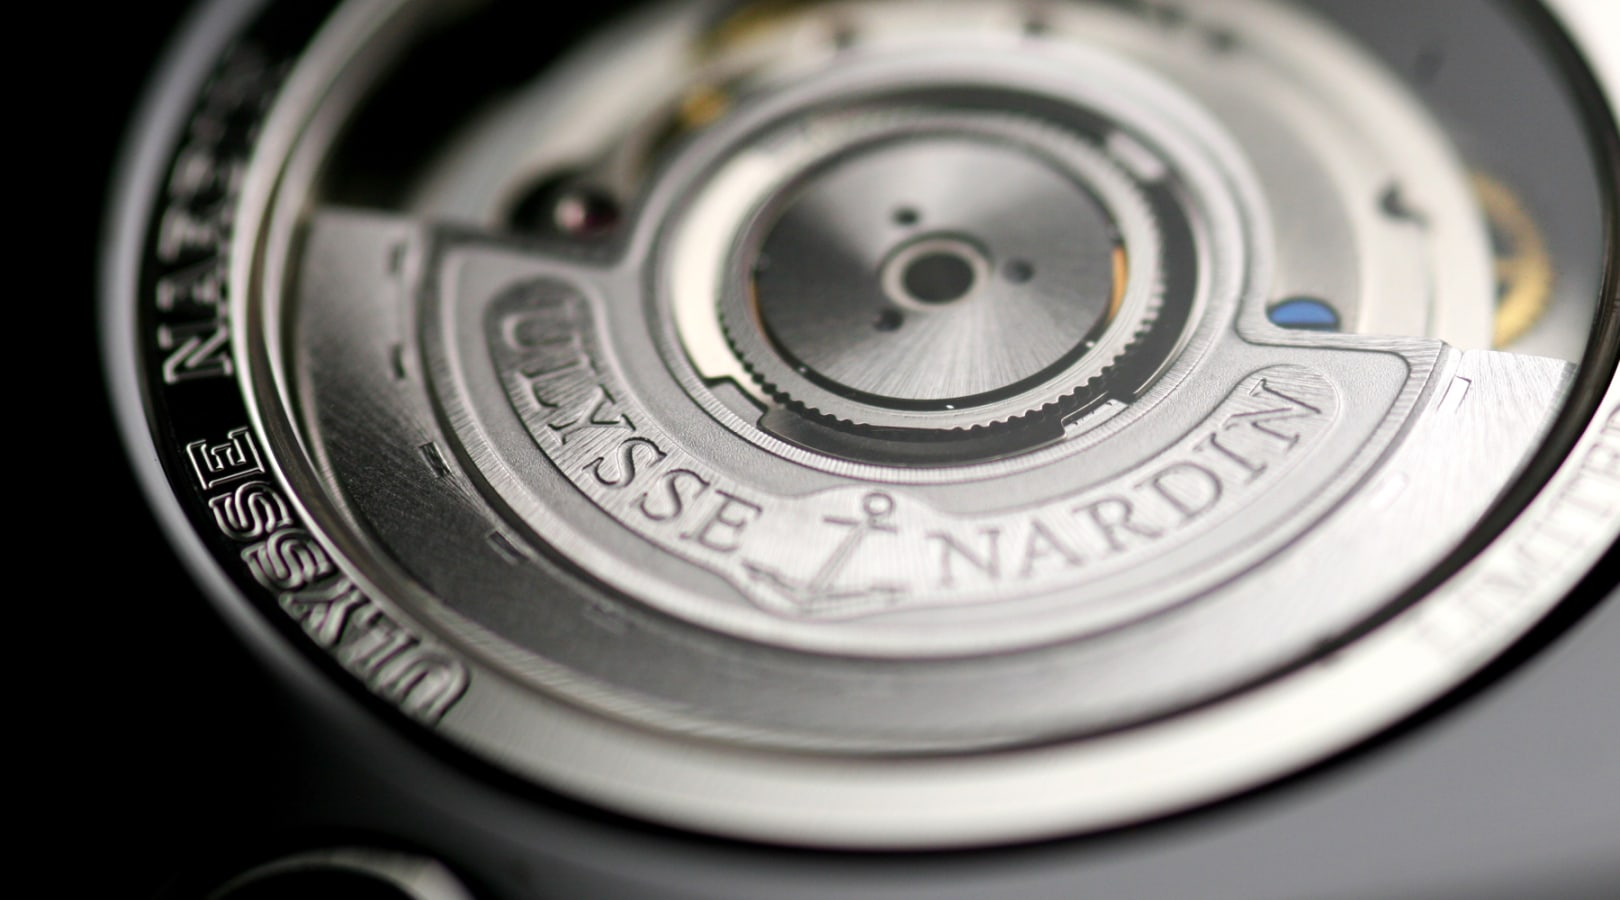 Up close shot of a Ulysse Nardin cell phone